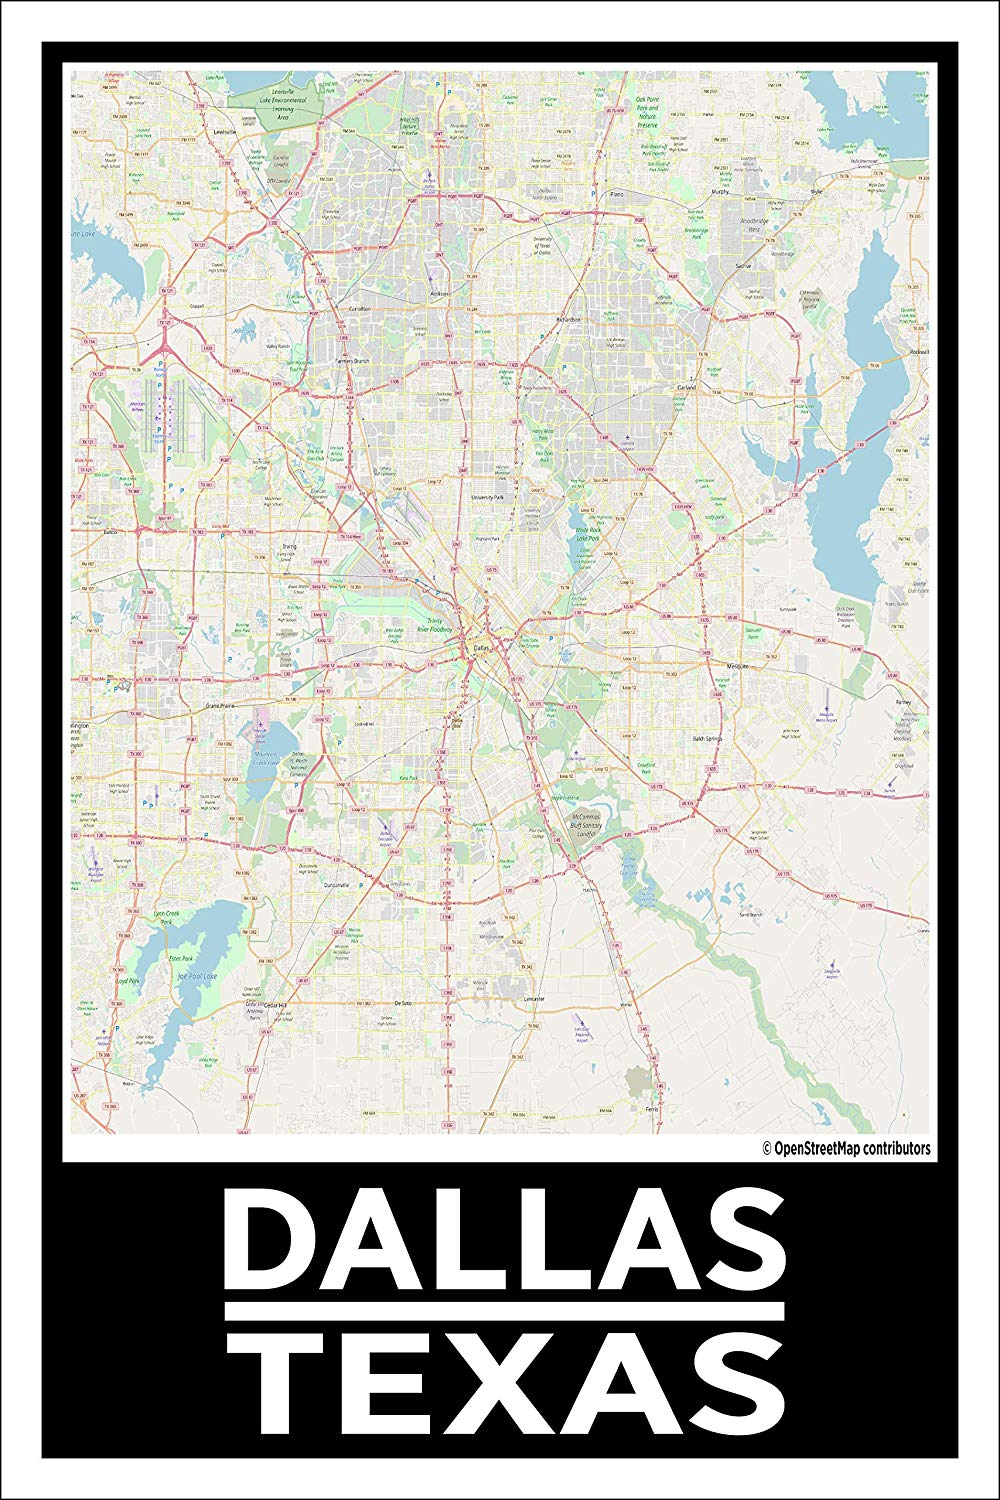 "Spitzy's Dallas Texas Map Poster - Home Wall Art for Your Bedroom or Home Office - Map of Dallas, City Map Poster (12"" x 18"" Dimensions Include a White .5"" Border)"